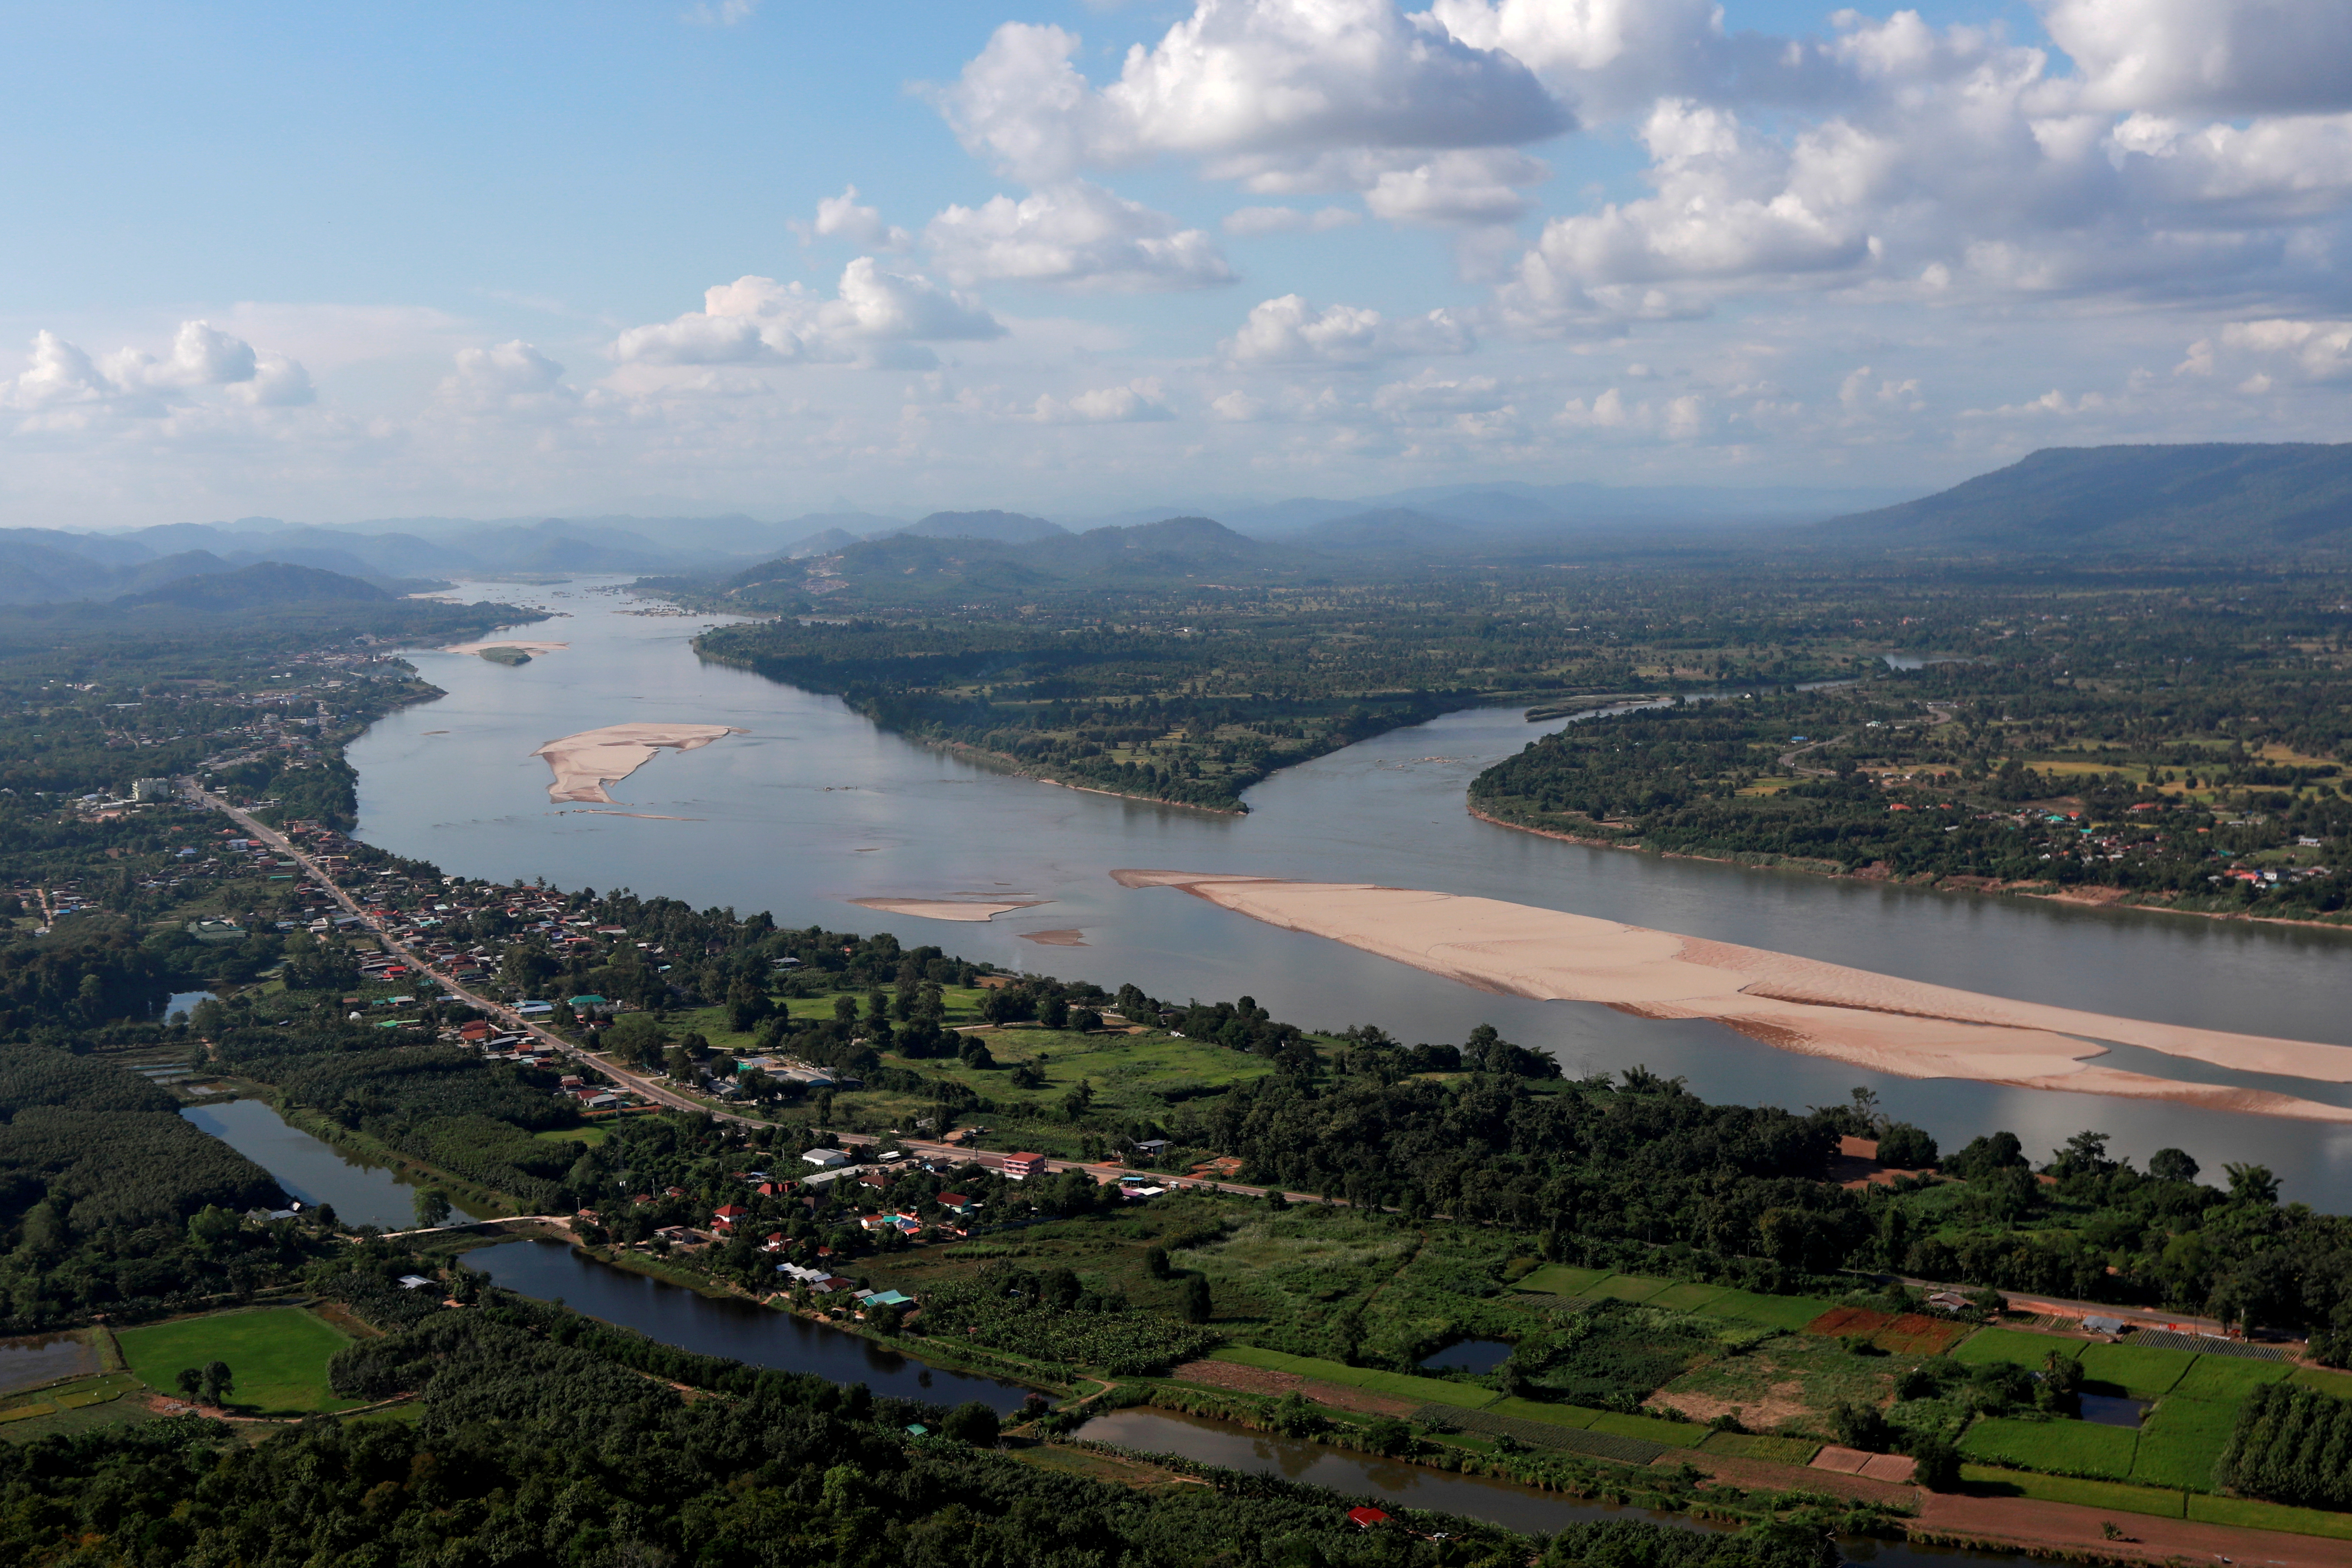 A view of the Mekong river bordering Thailand and Laos is seen from the Thai side in Nong Khai, Thailand, October 29, 2019. REUTERS/Soe Zeya Tun/File Photo